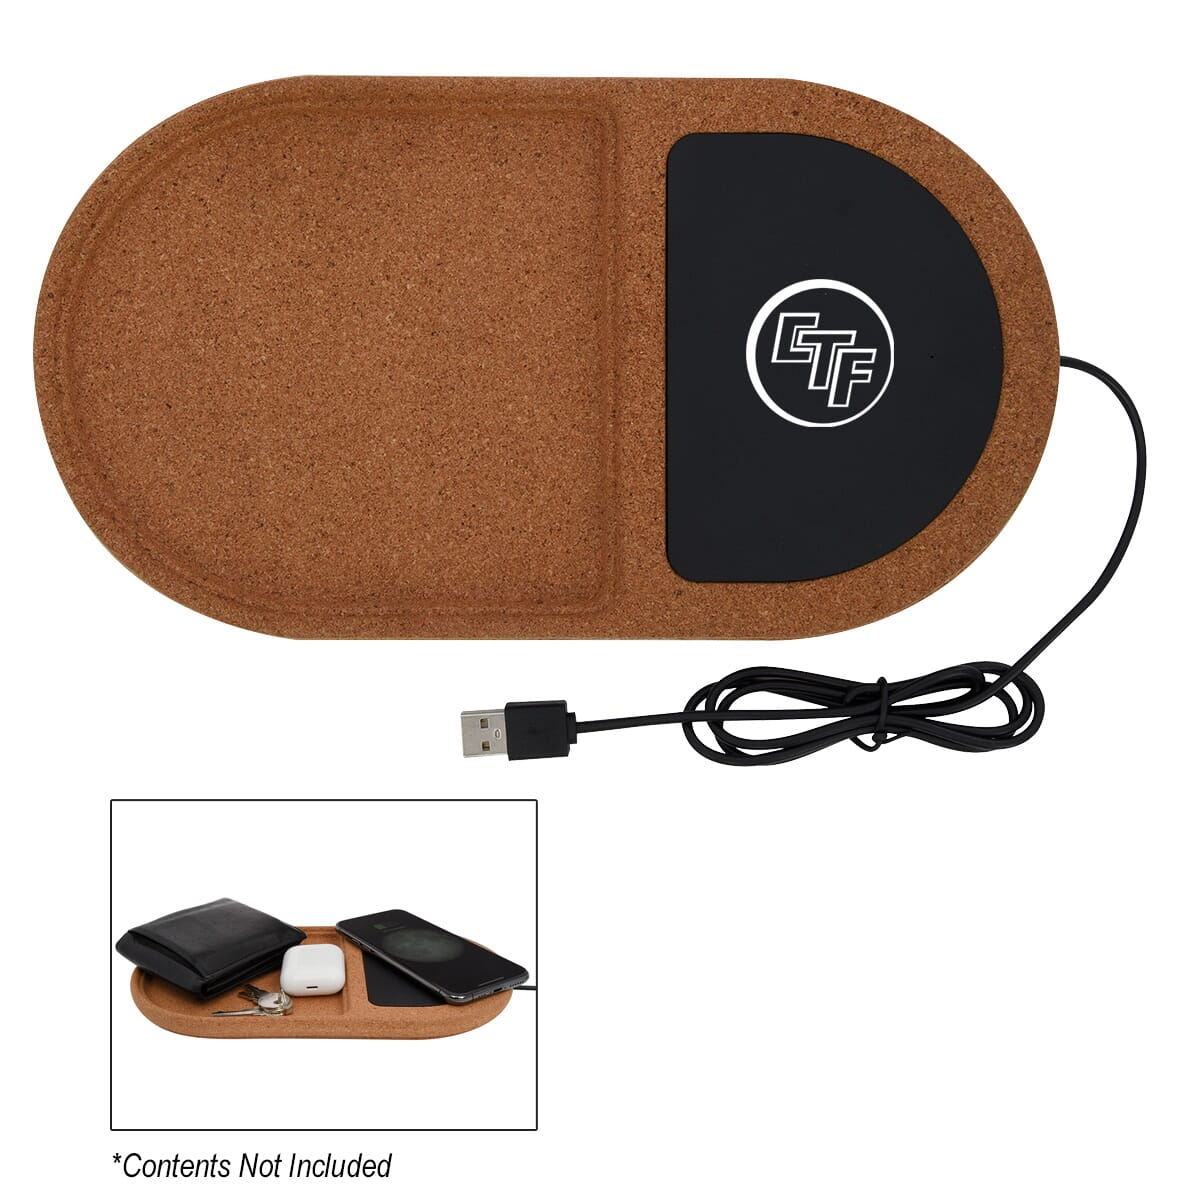 Customized Cork Wireless Charging Pad Desktop Organizer